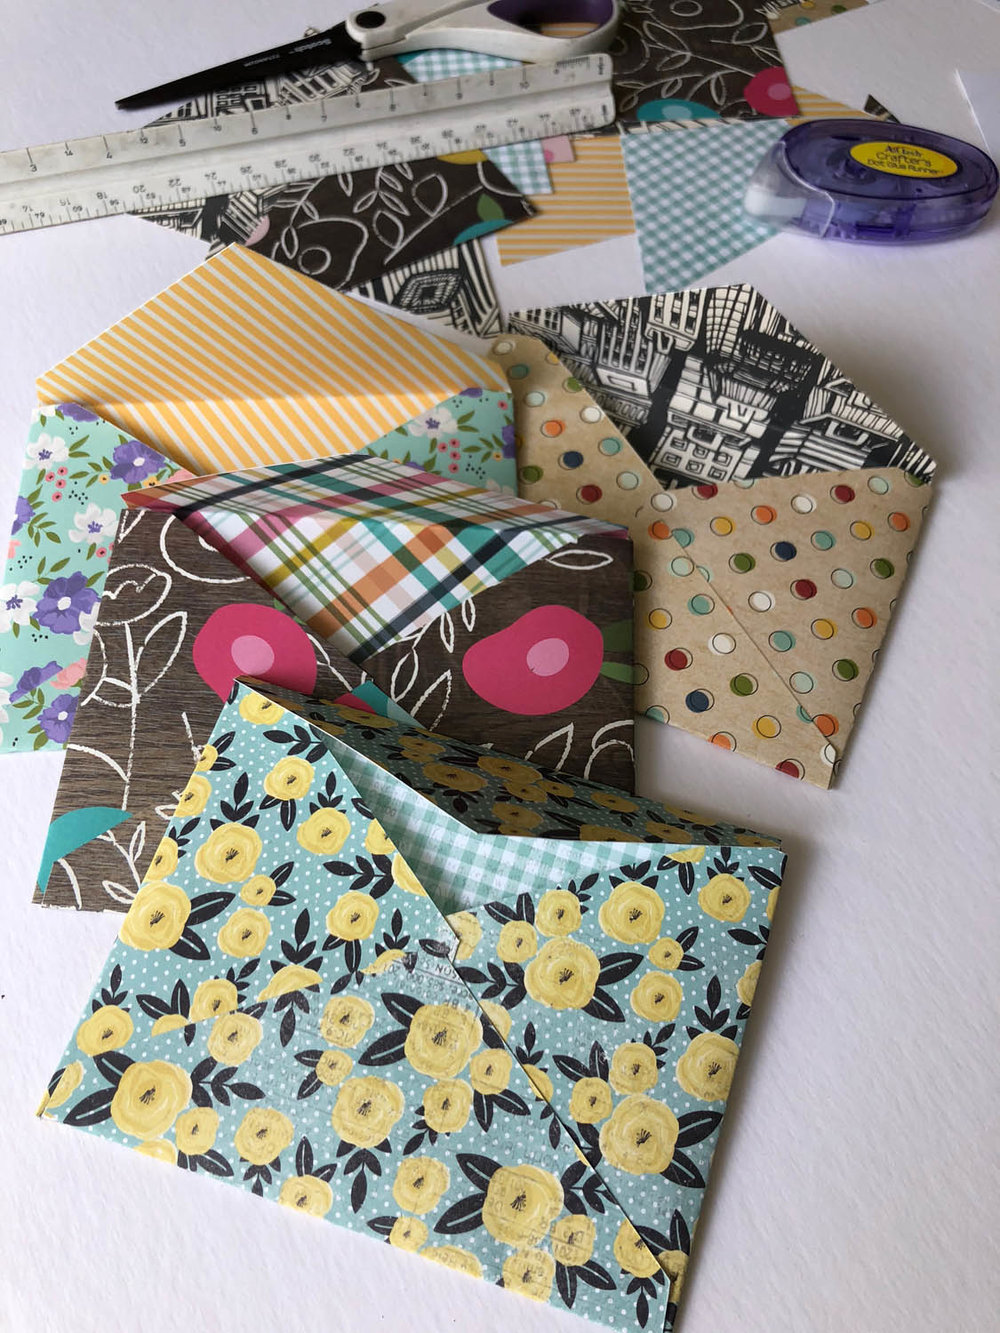 Diy Envelopes With Scrapbook Paper Yarn Scissors Silk